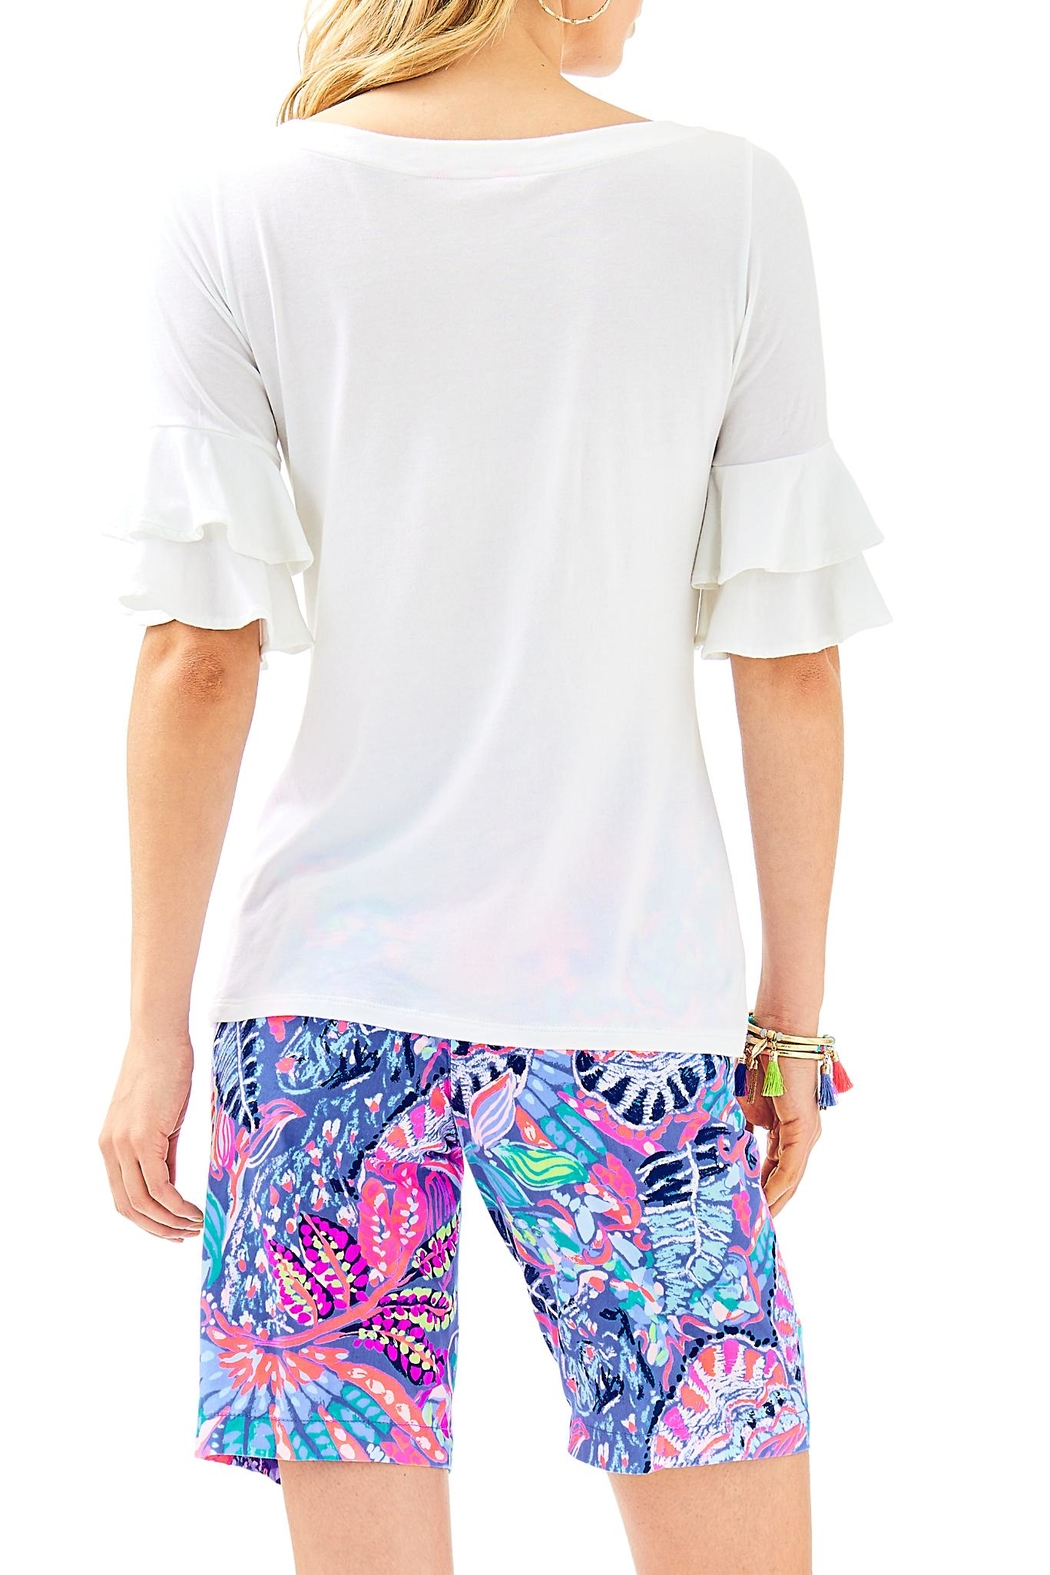 Lilly Pulitzer Lula Top - Front Full Image